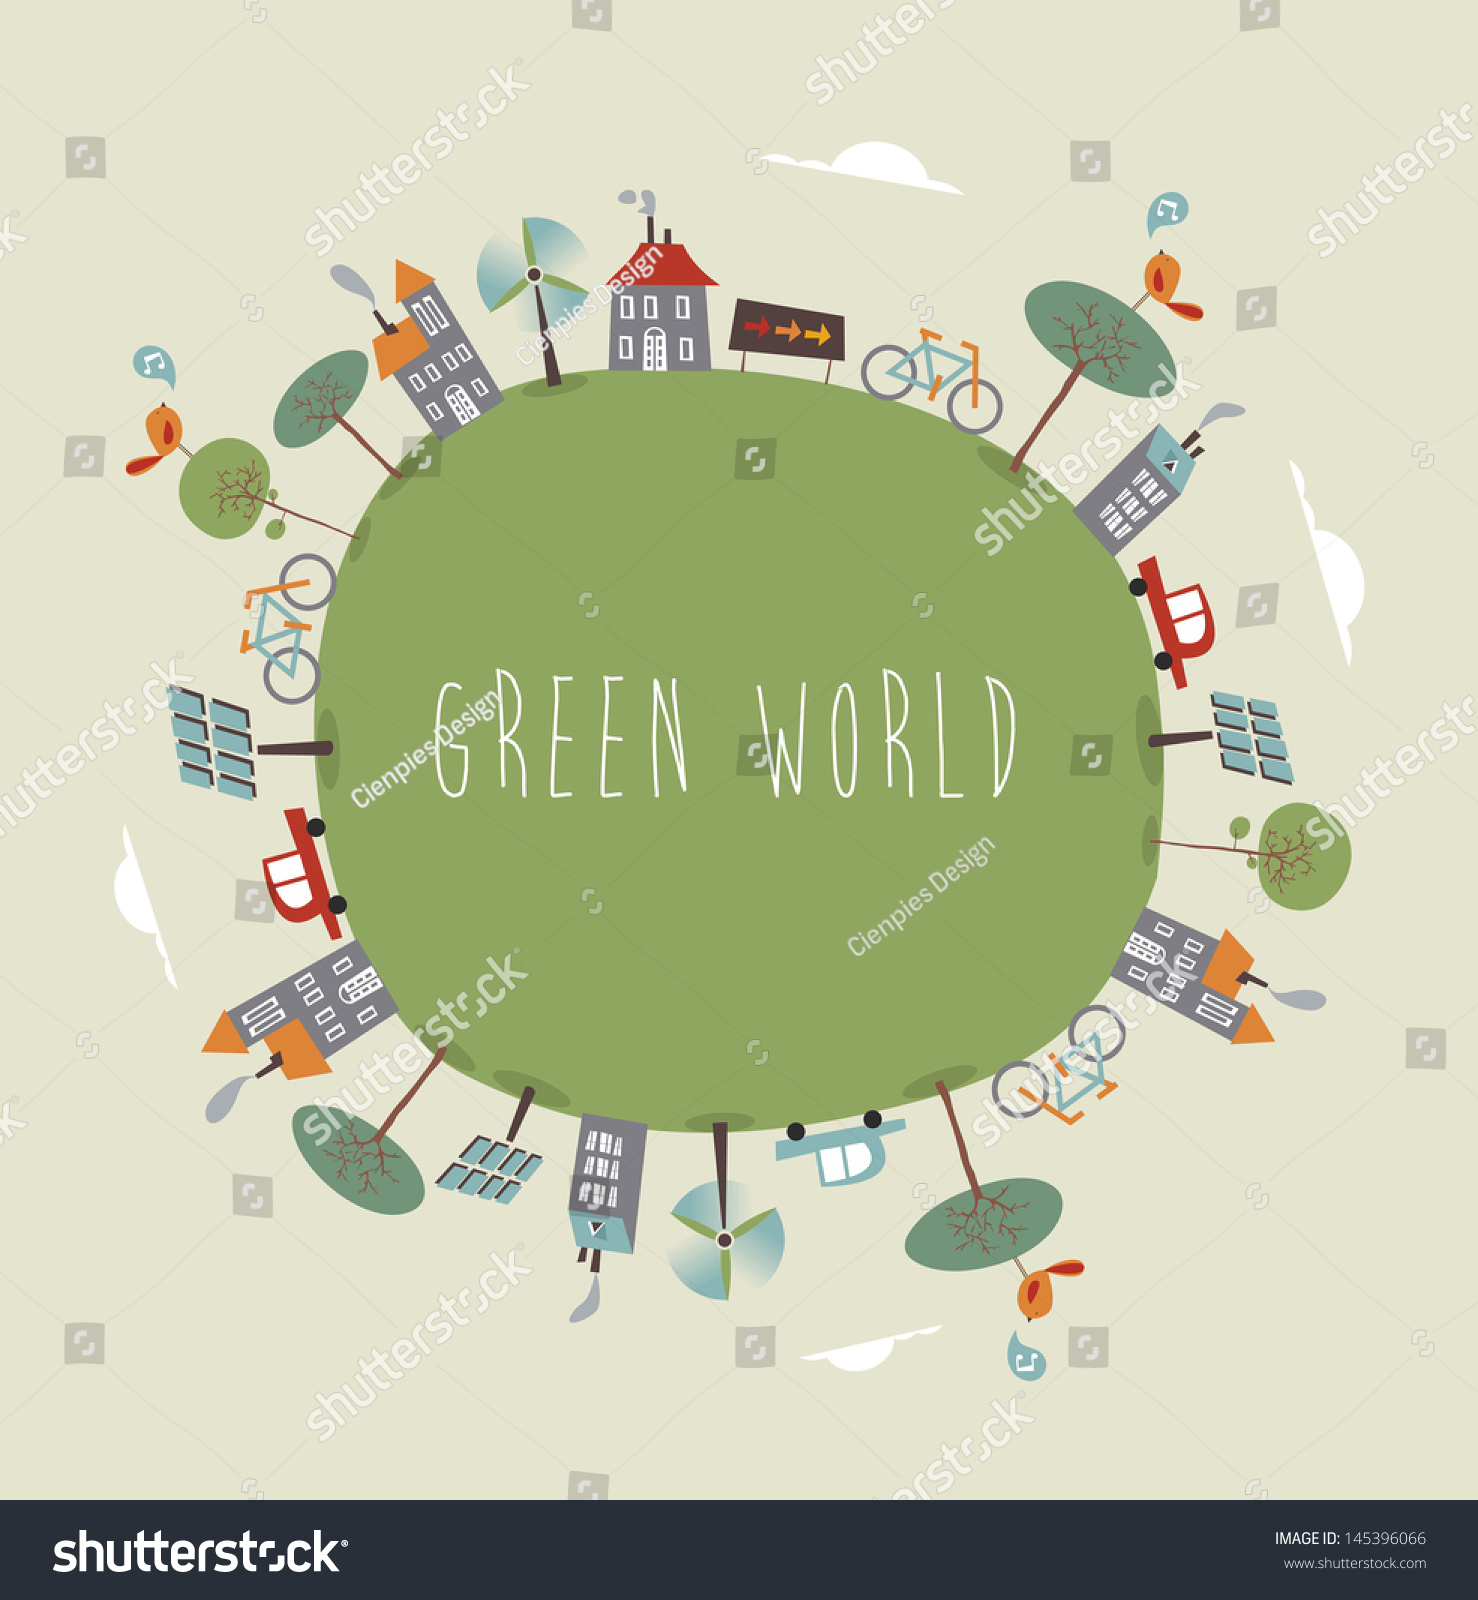 Trendy Colorful Go Green World Vector 스톡 벡터 사용료 없음